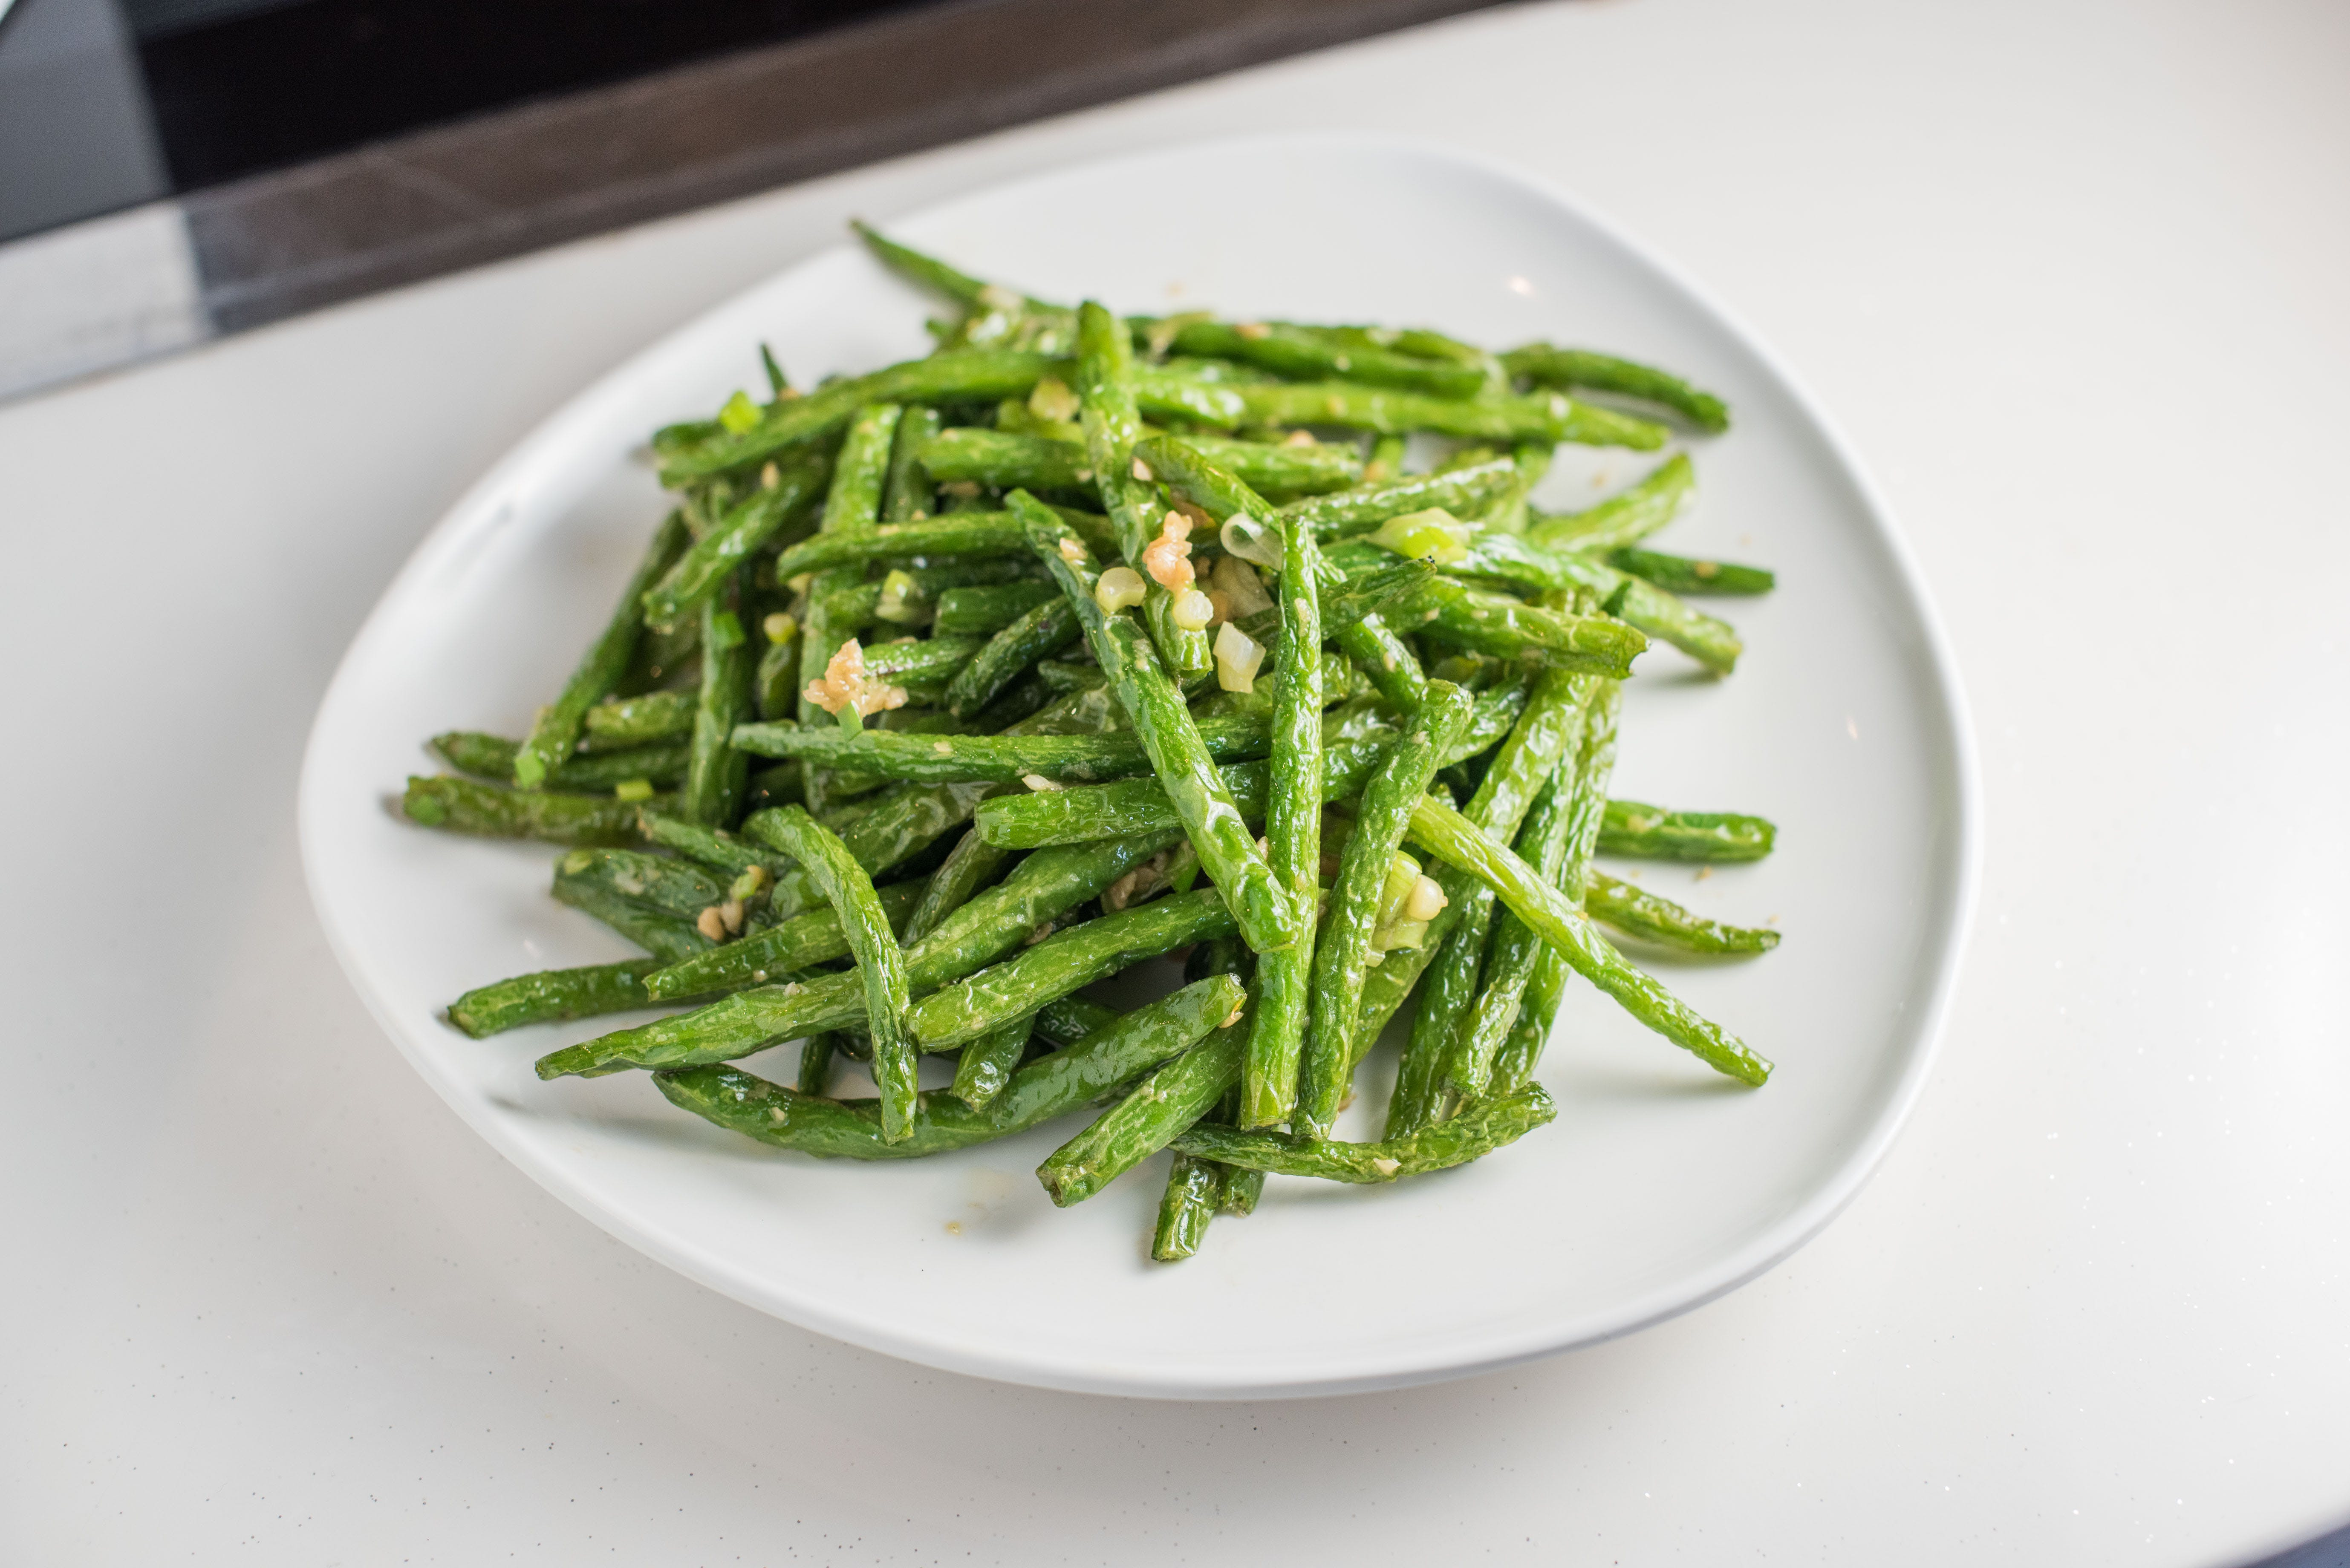 C43. Sauteed String Beans from Huan Xi in Milwaukee, WI